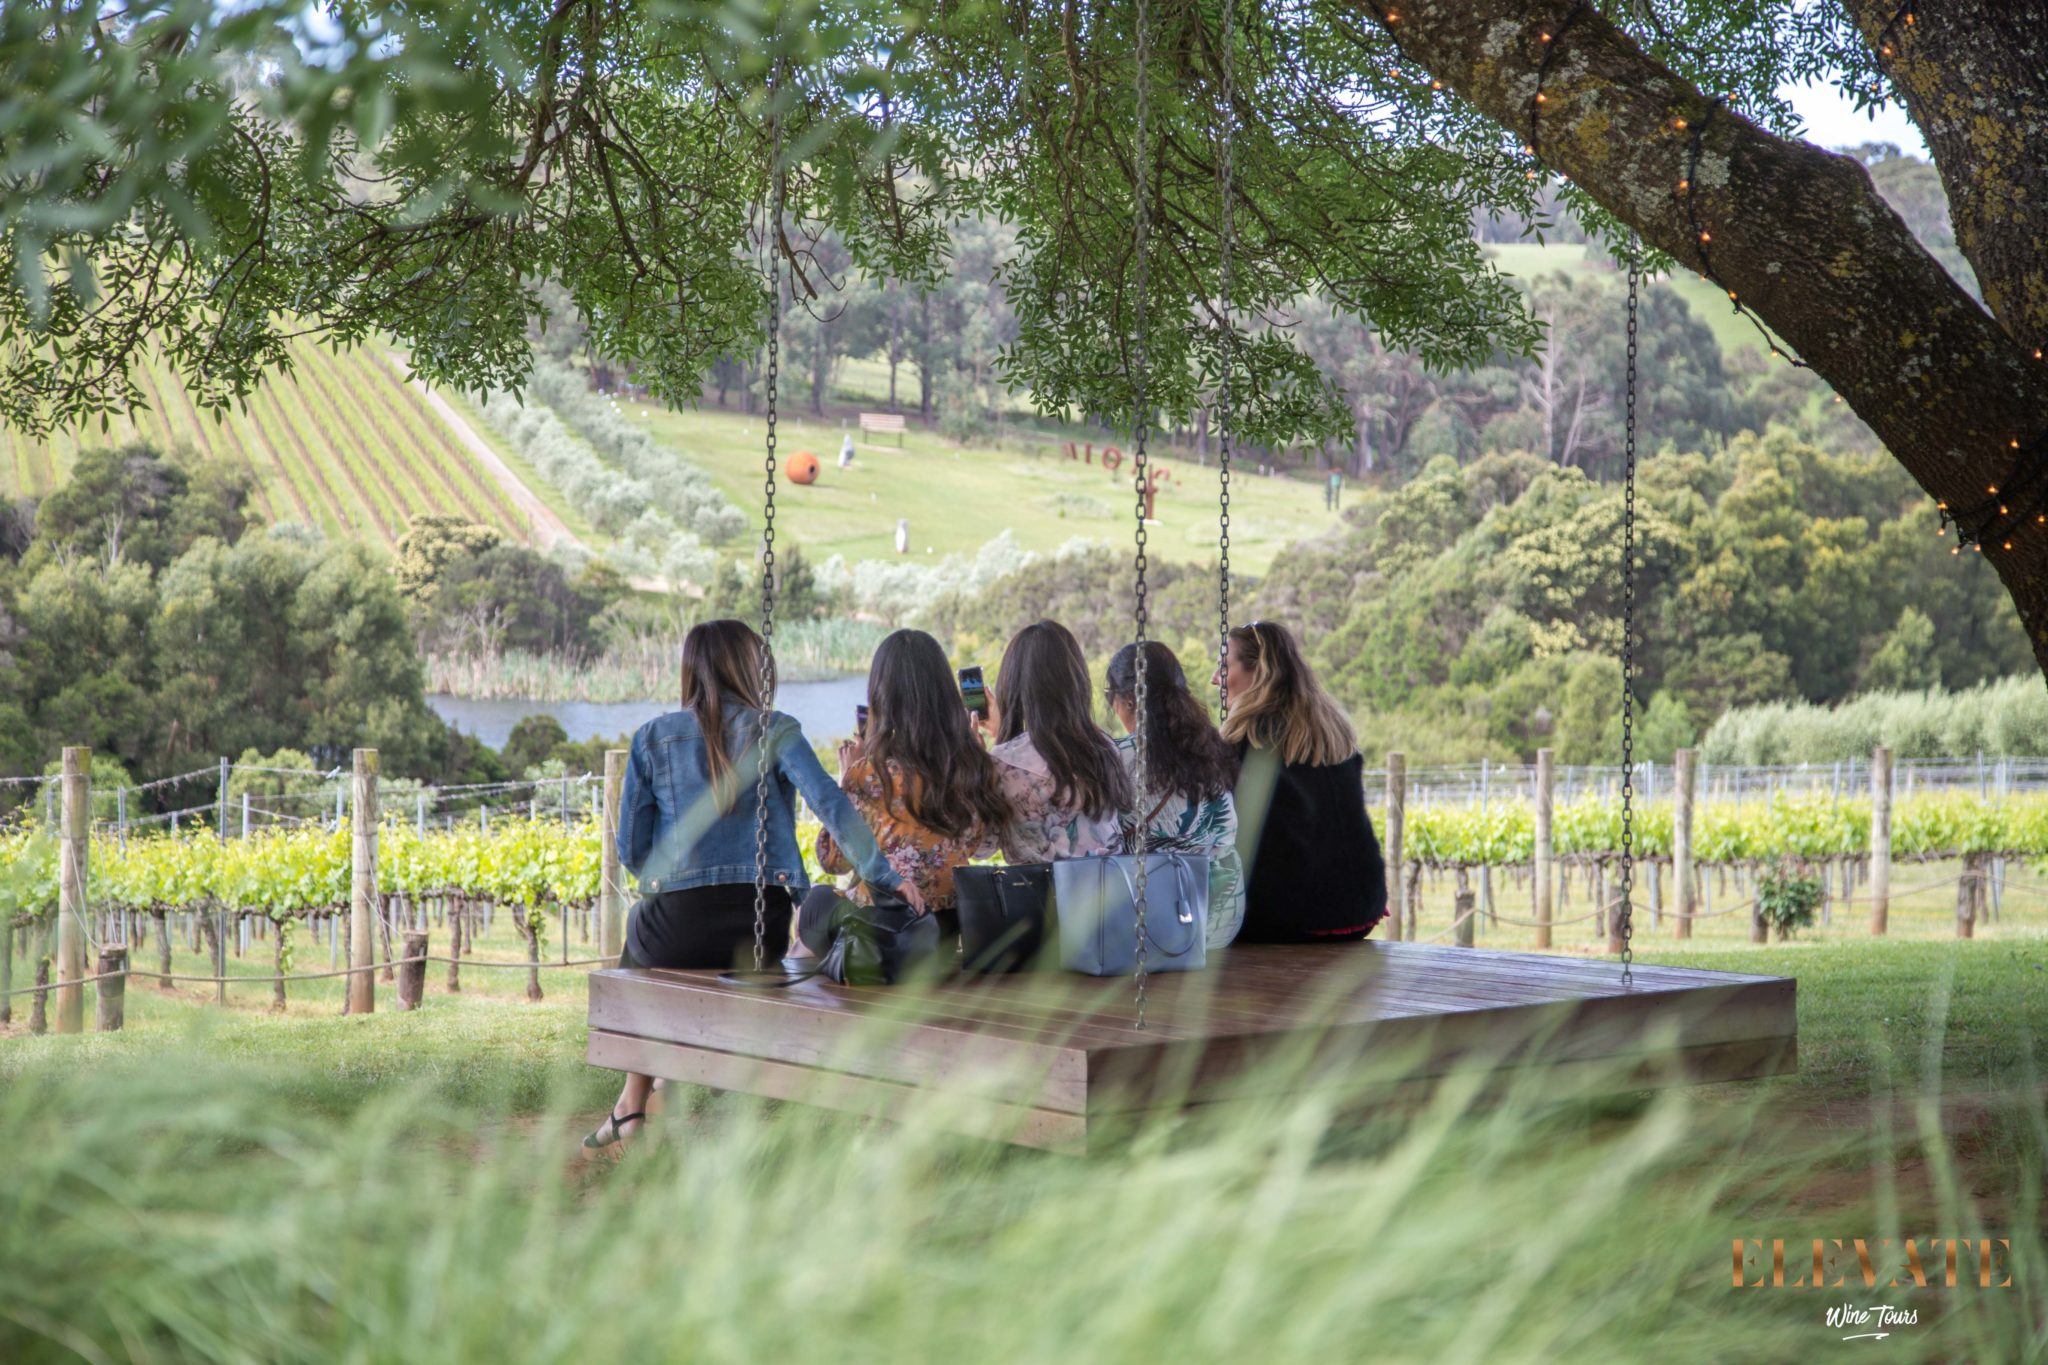 Ladies on a suspended platform underneath a tree at a vineyard overlooking the vines